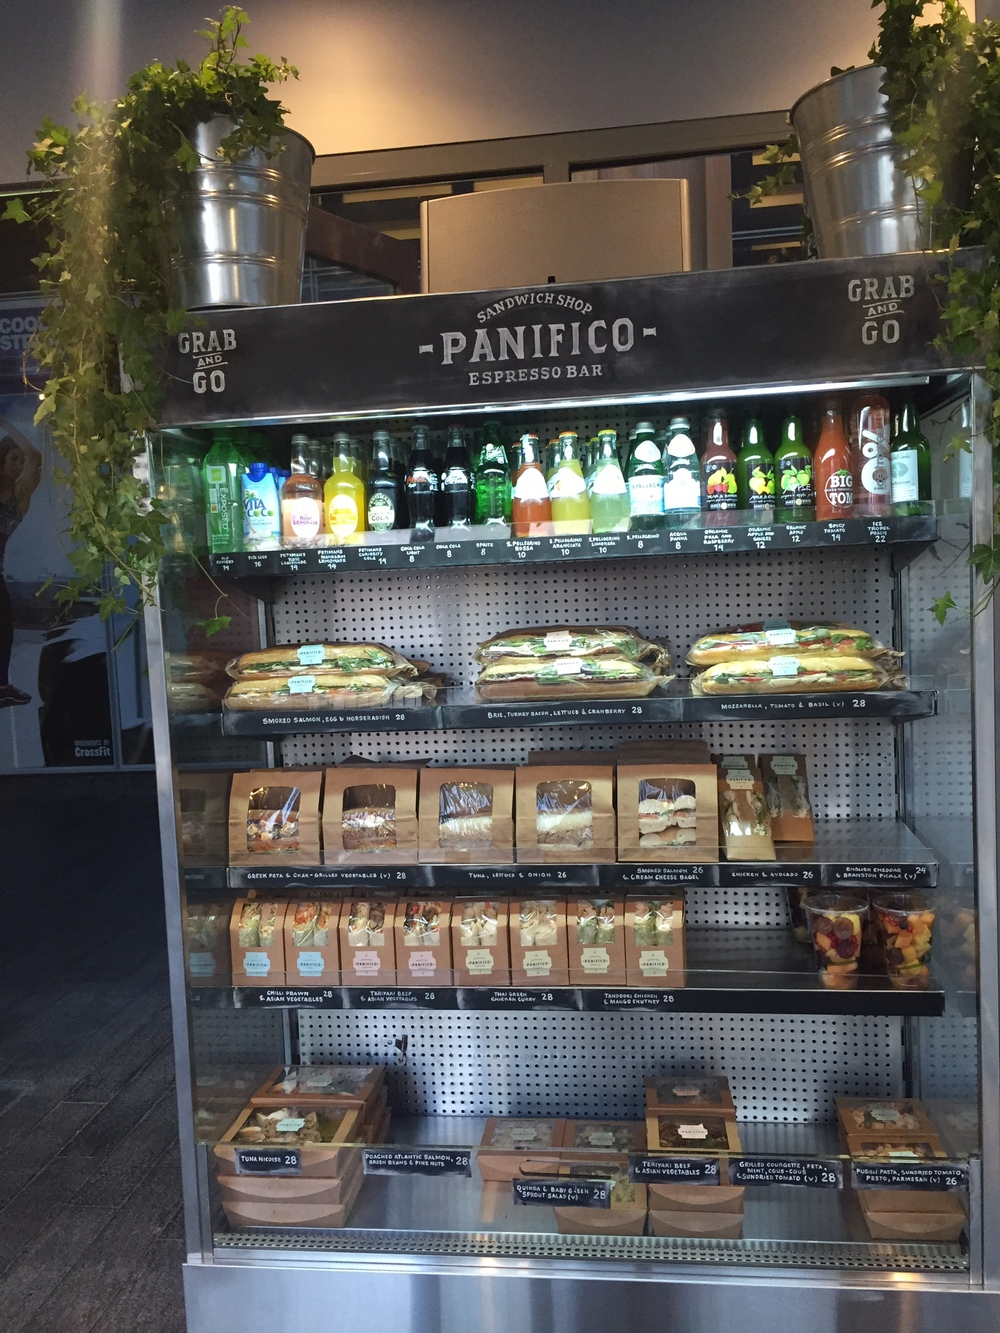 A fantastic selection of grab-and-go beverages, sandwiches and salads. If you're always in a hurry and in the mood for gourmet, you're going to become best friends with this cooler.